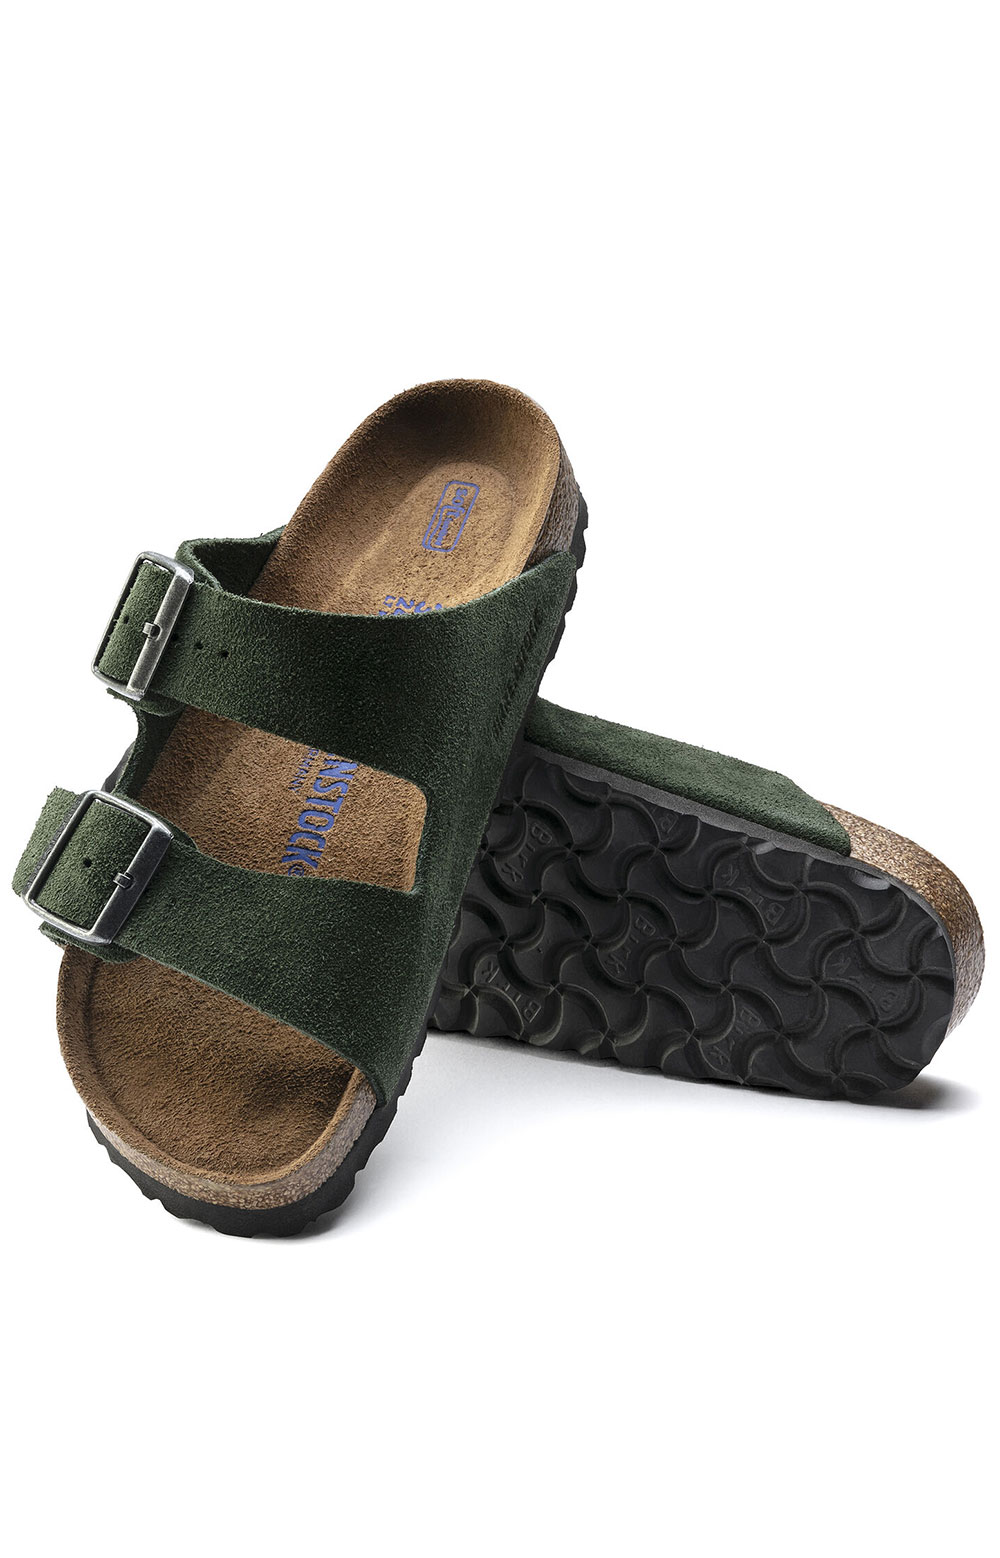 (1018143) Arizona Soft Footbed Sandals - Mountain View Green  5